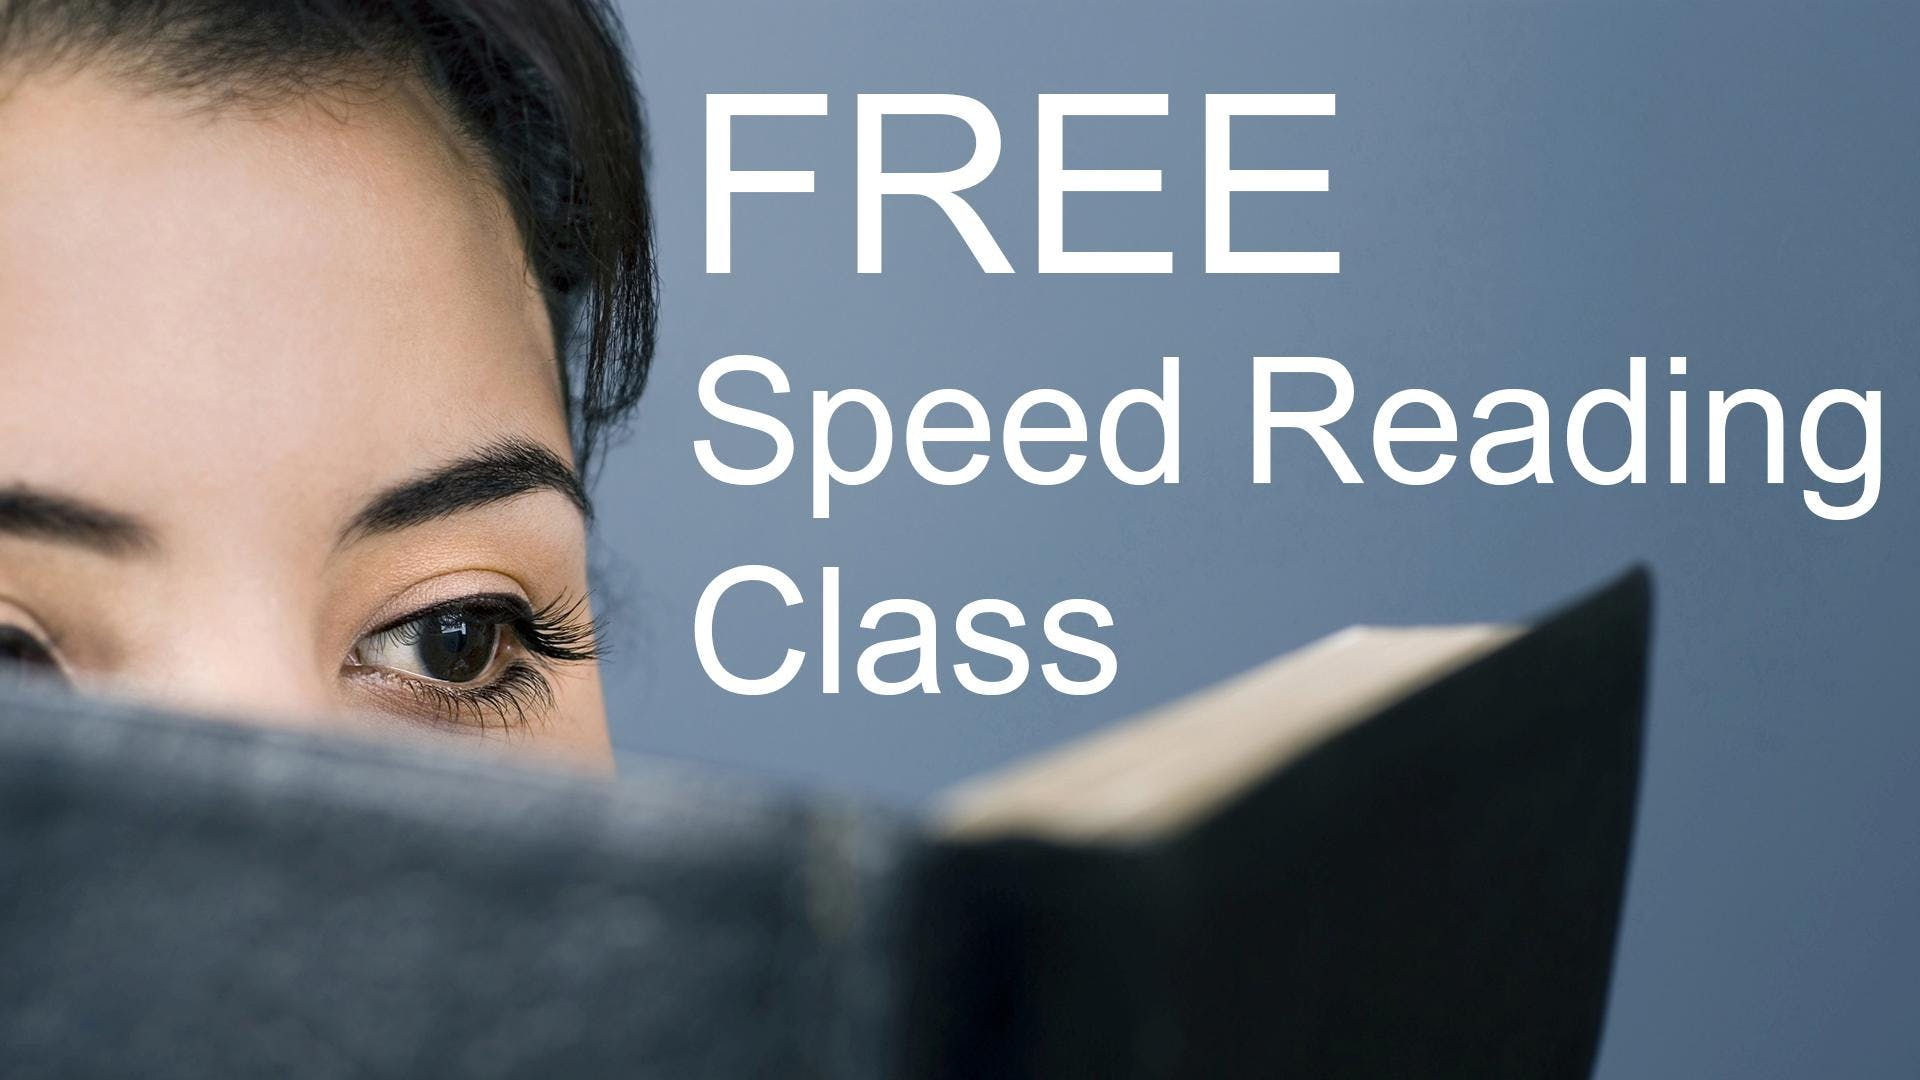 Free Speed Reading Class - Dallas